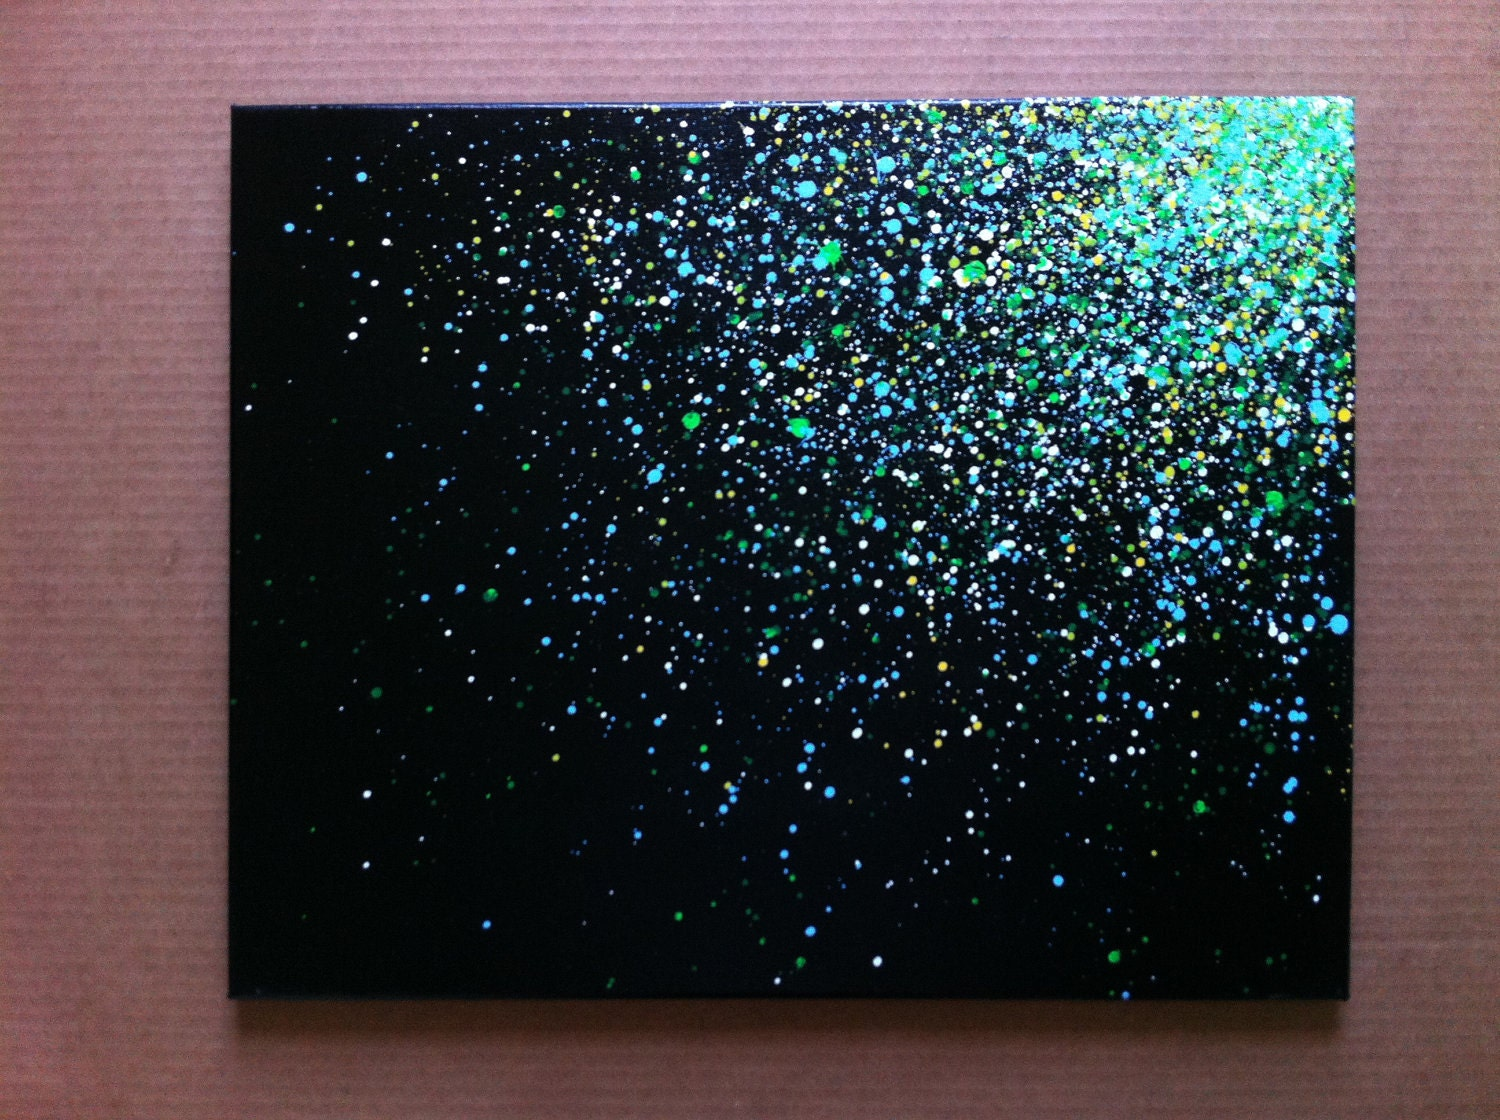 16x20 paint splatter canvas by easerr on etsy for Paint to canvas